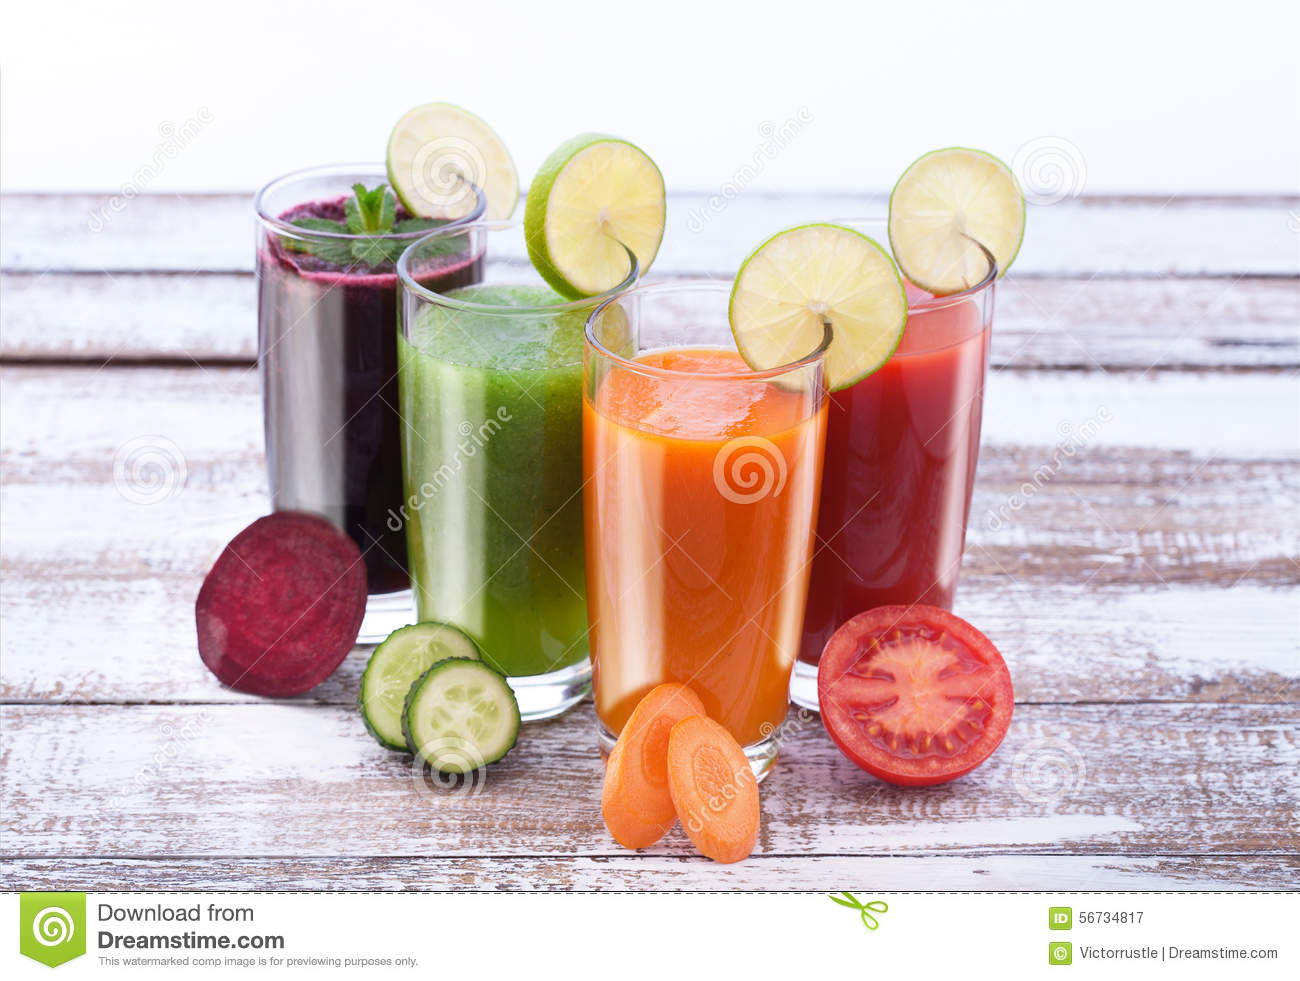 how to make mix vegetable juice